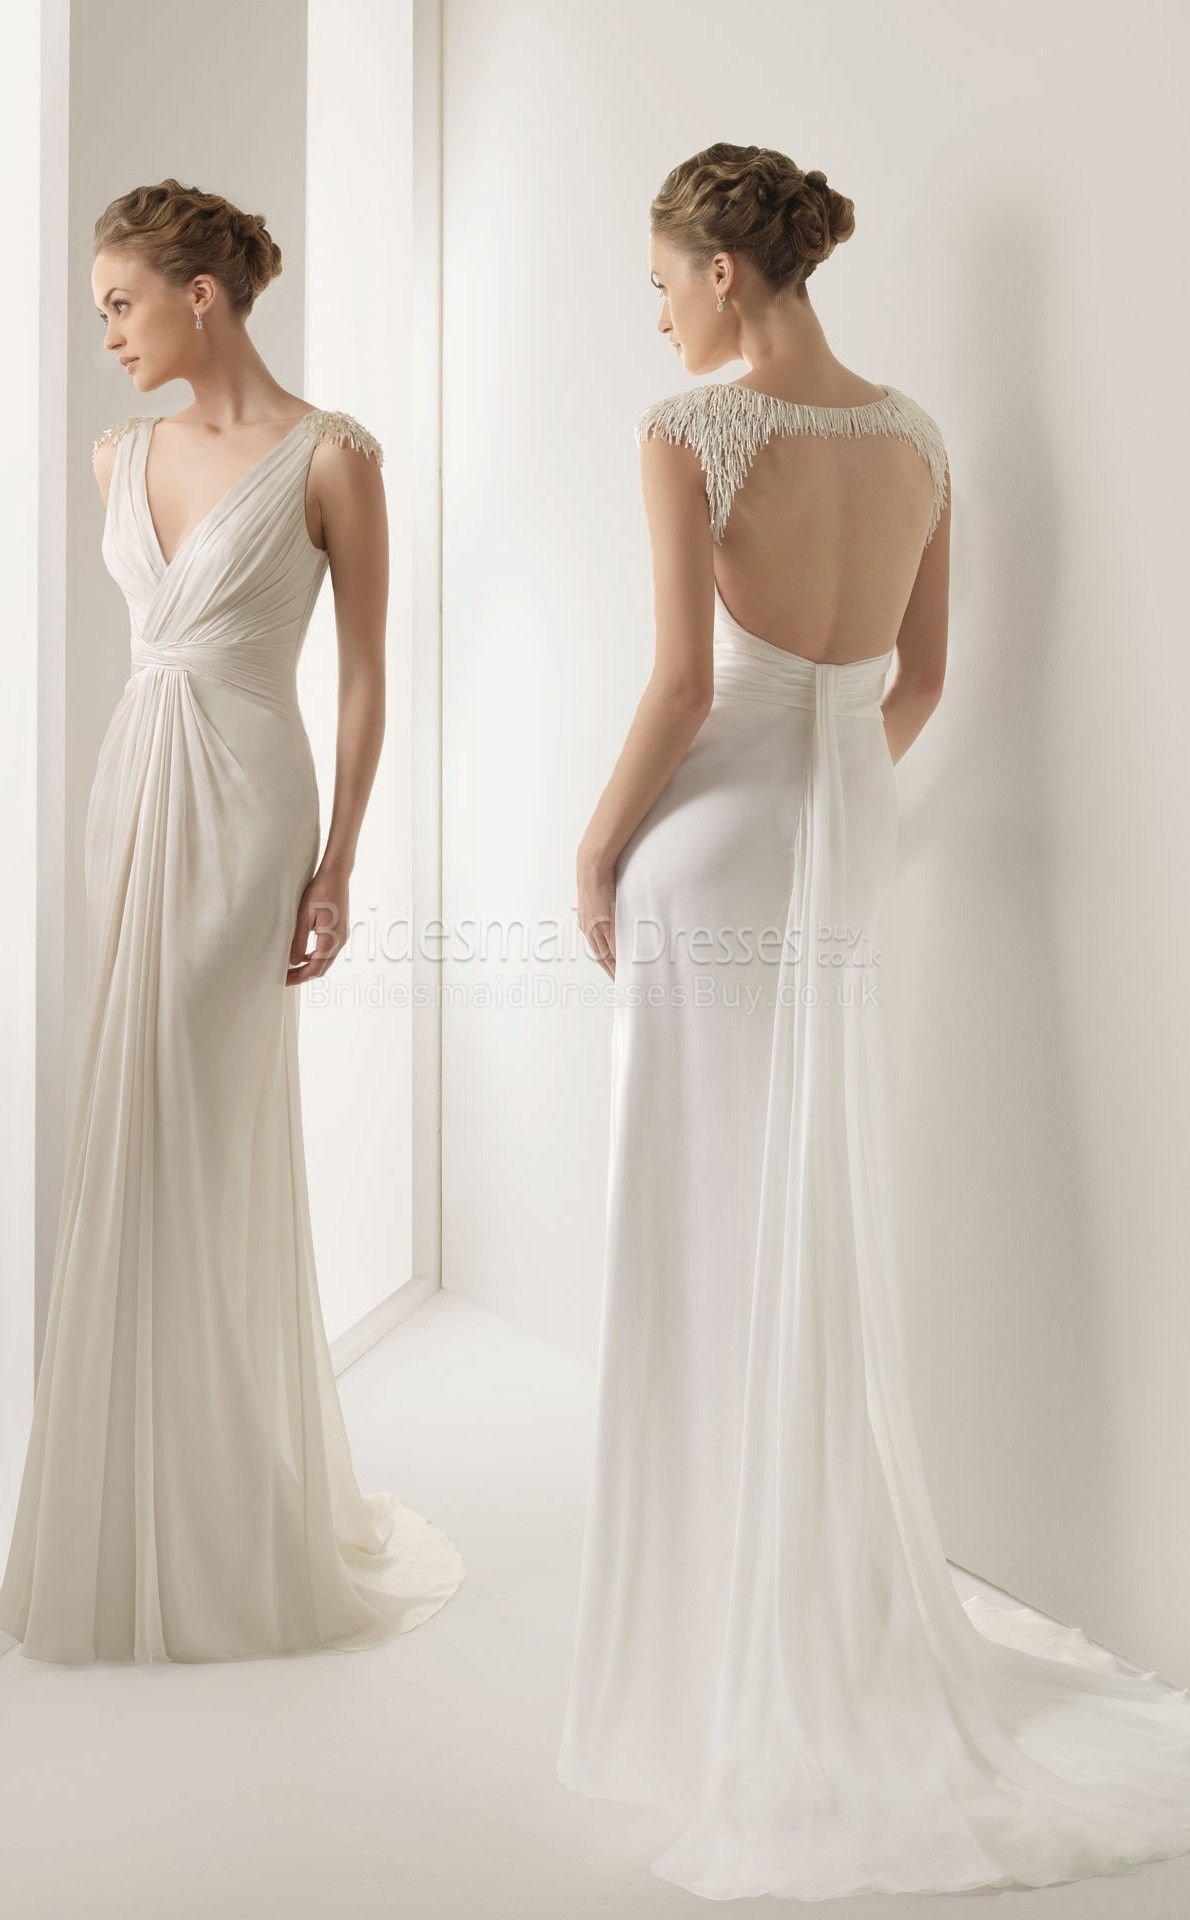 Dresses for guests at a beach wedding  Best Winter Wedding Guest Dresses  Simple weddings Beach weddings